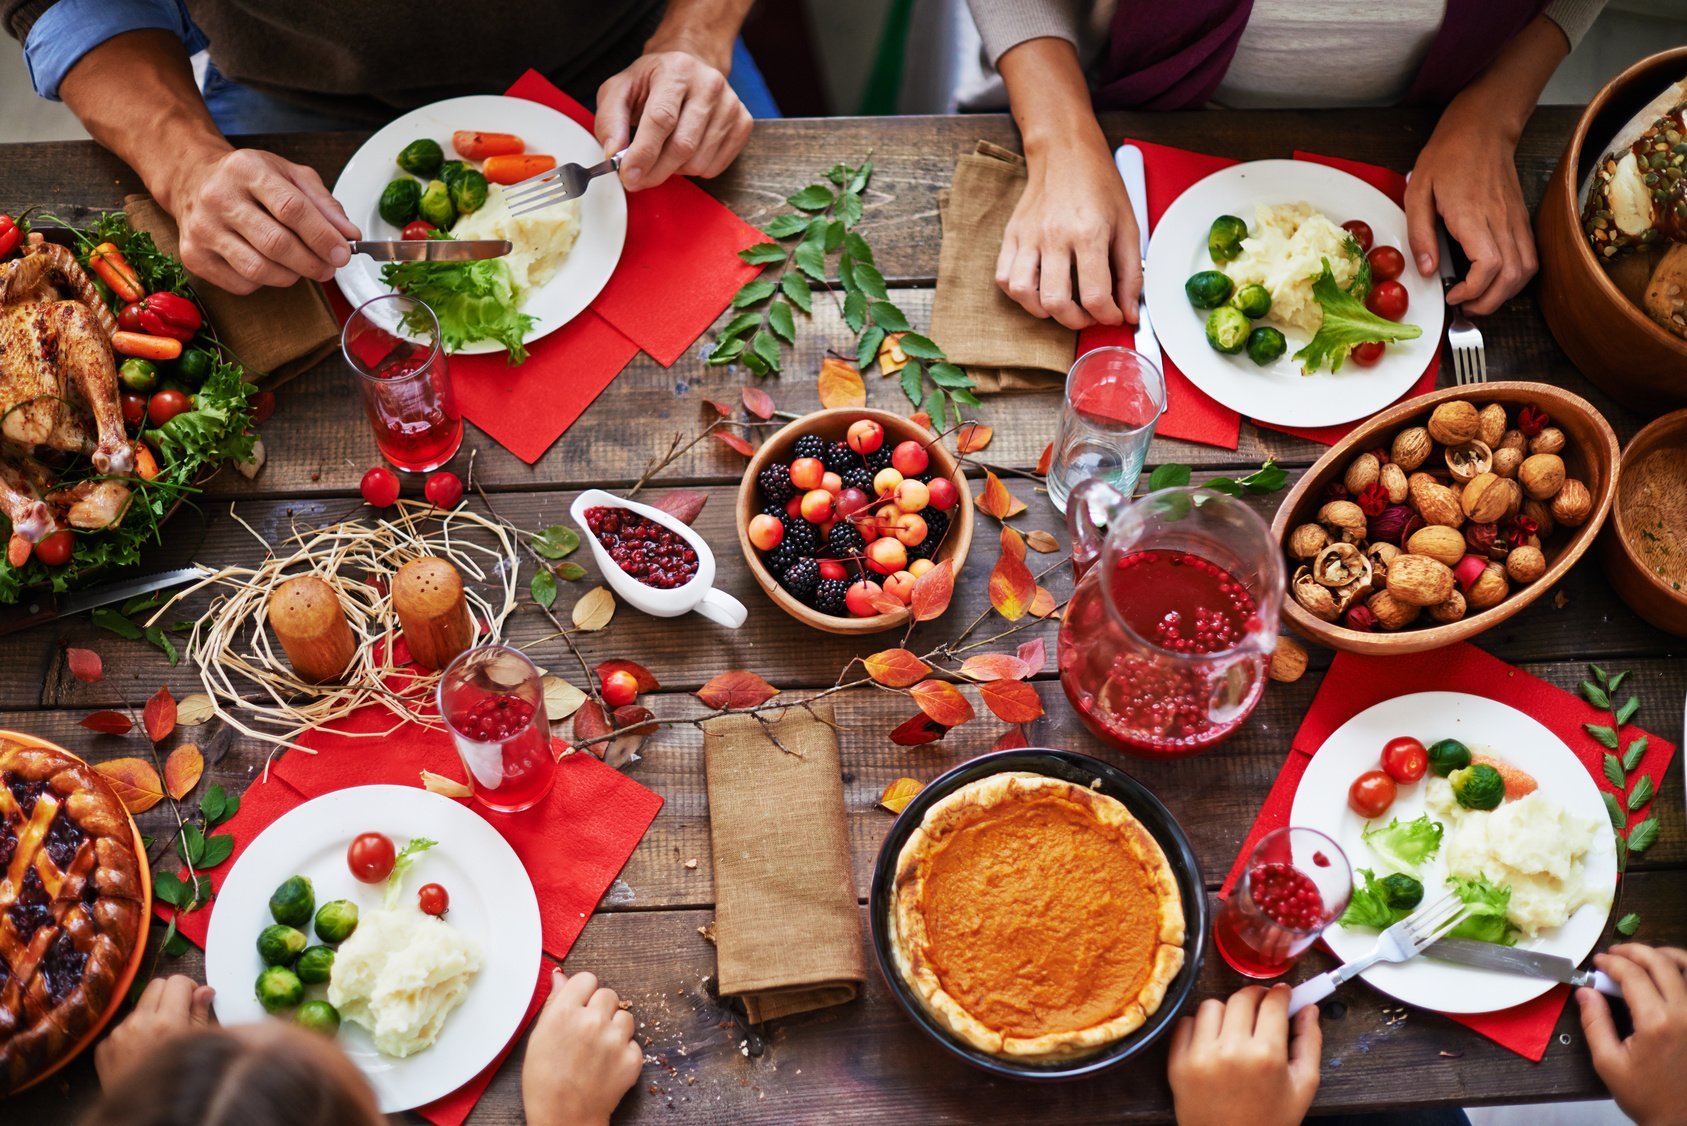 How to Host a Pinterest-Worthy Thanksgiving